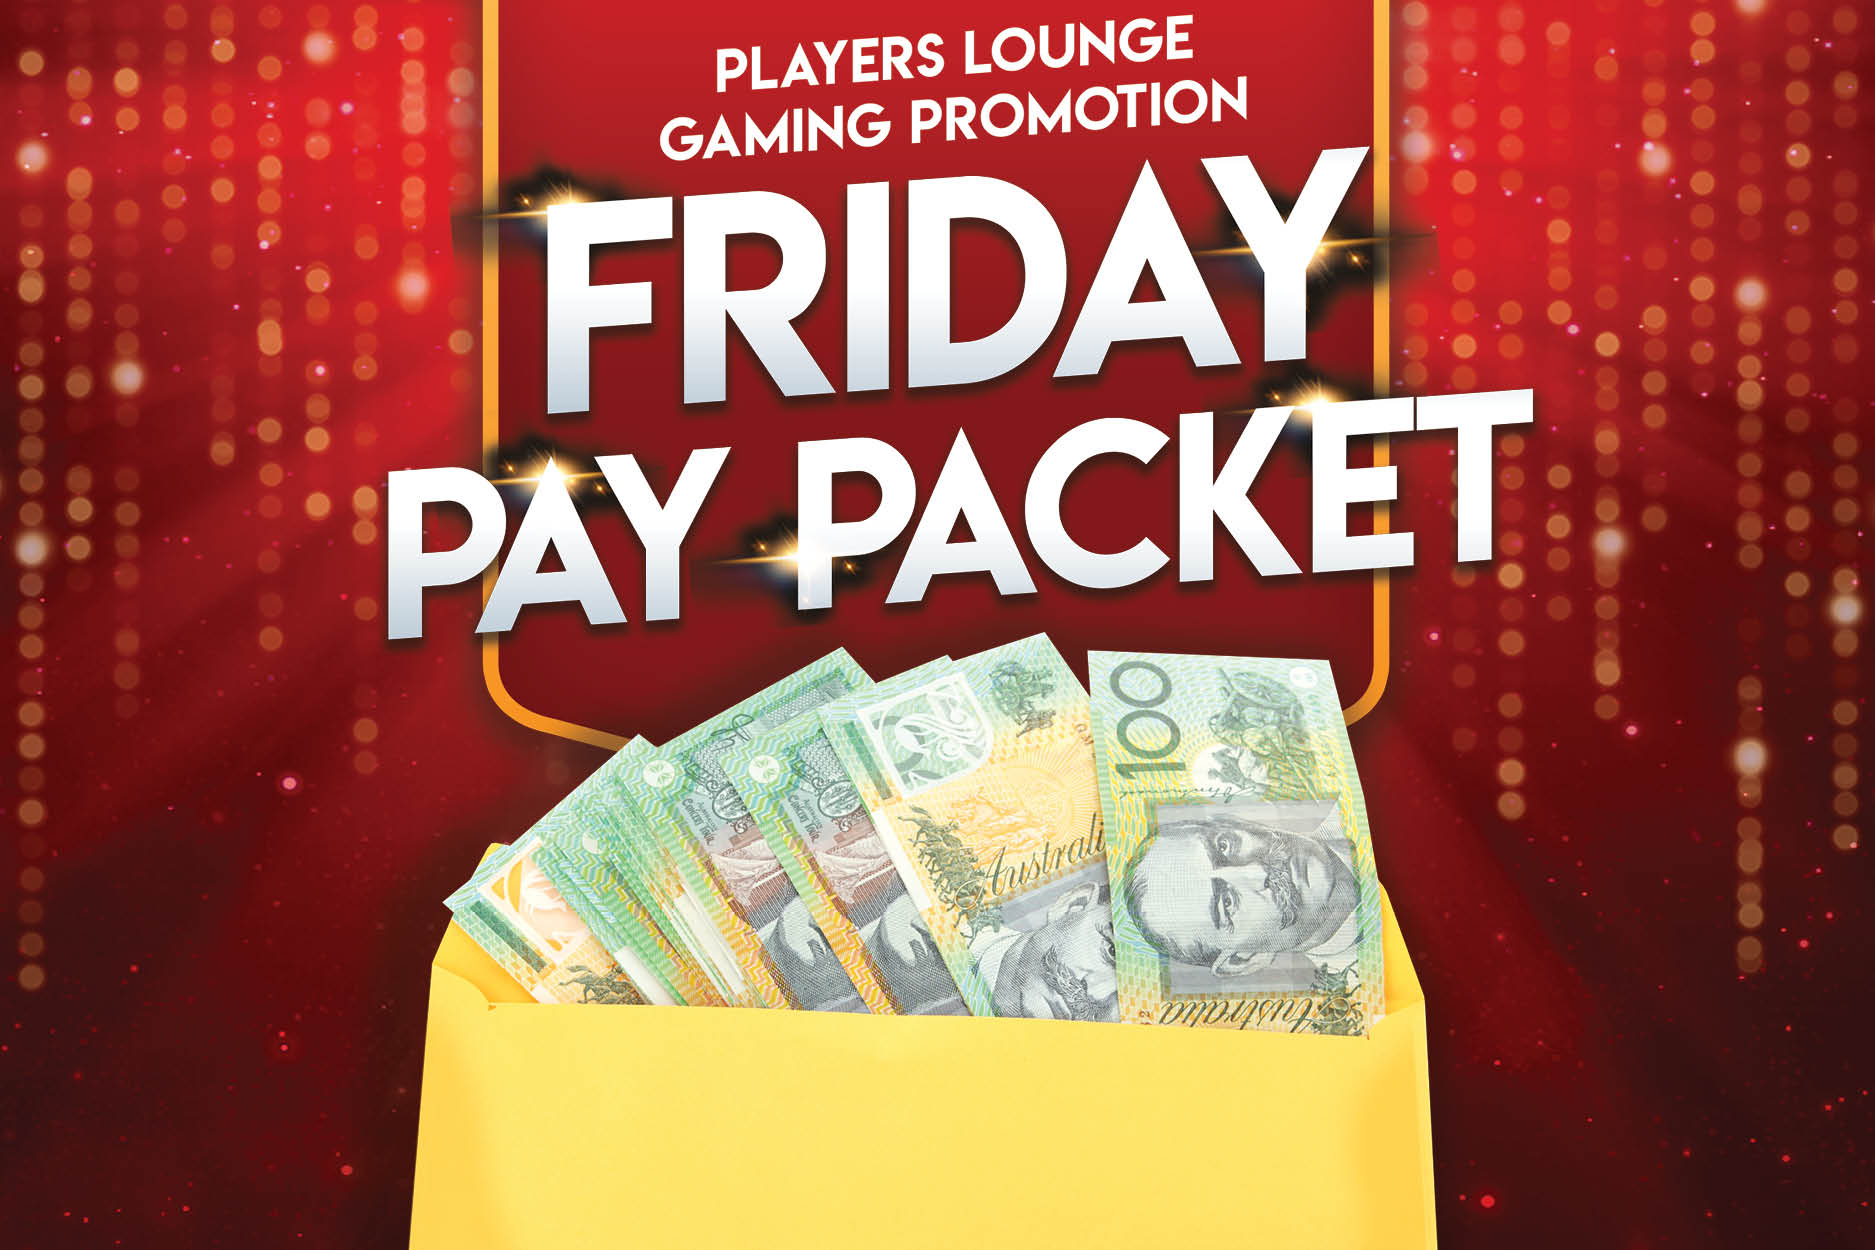 Friday Pay Packet